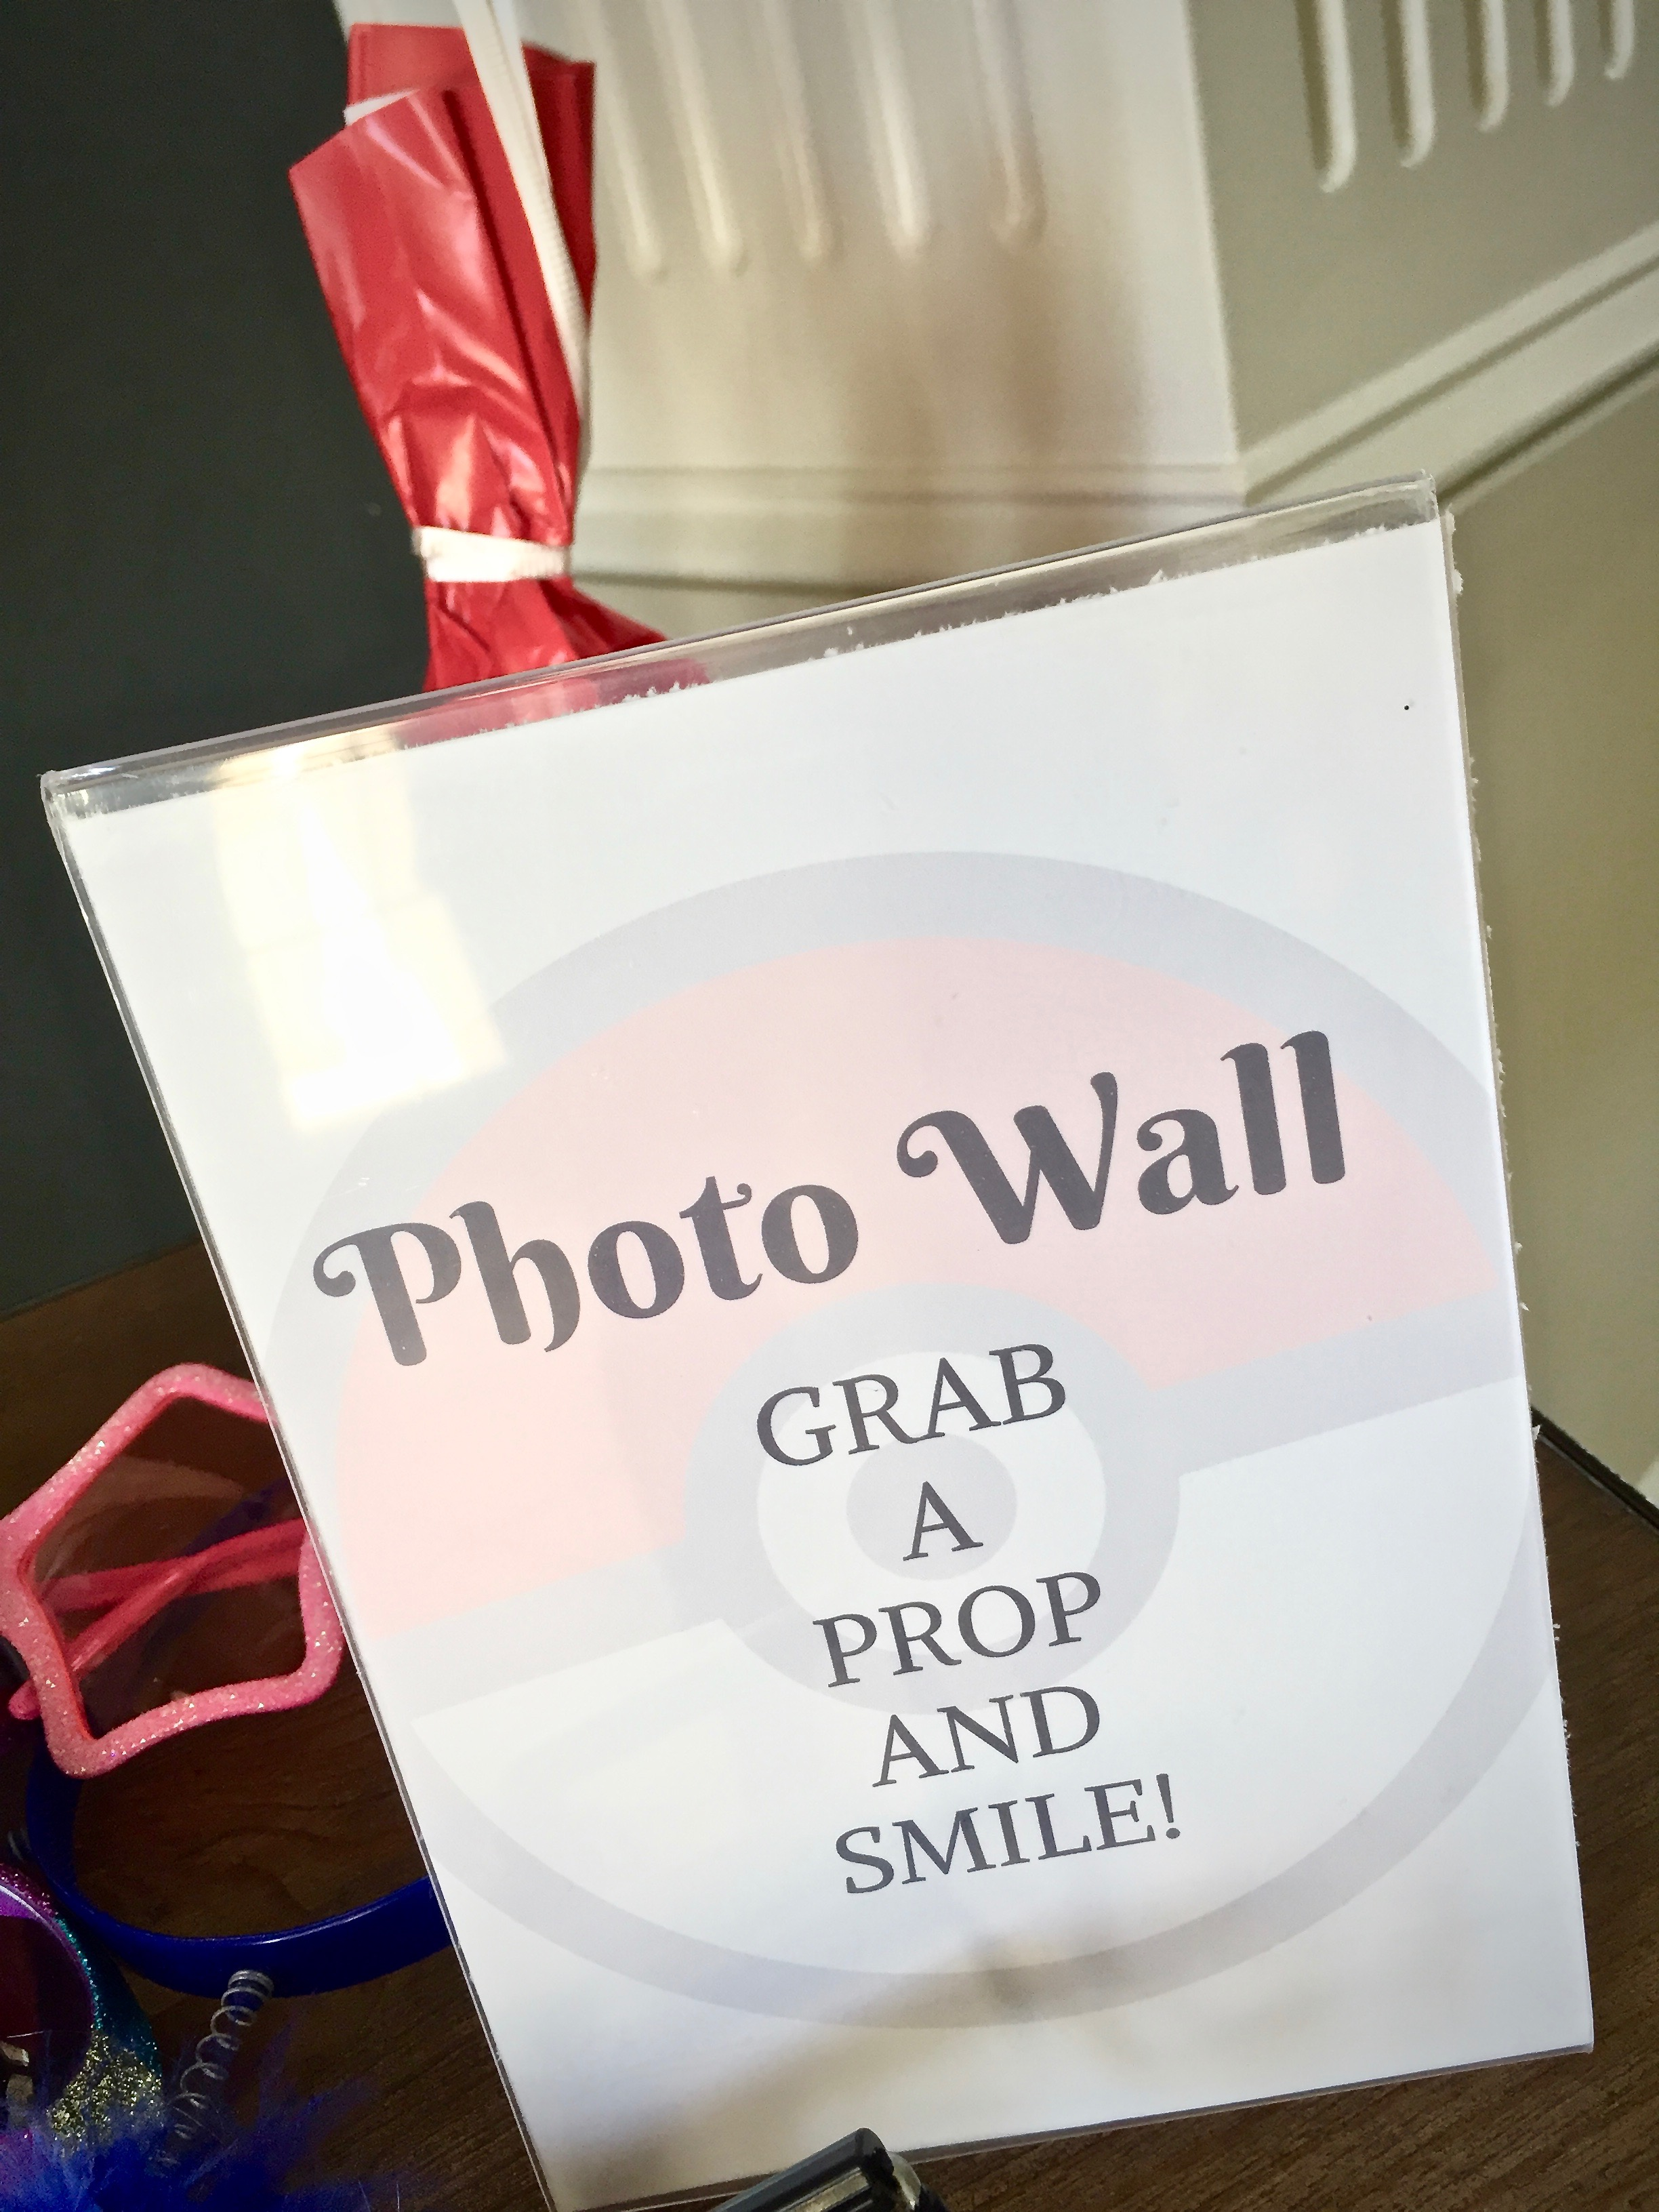 Free printable Pokemon party photo wall sign - Pokemon Party Ideas & Printables